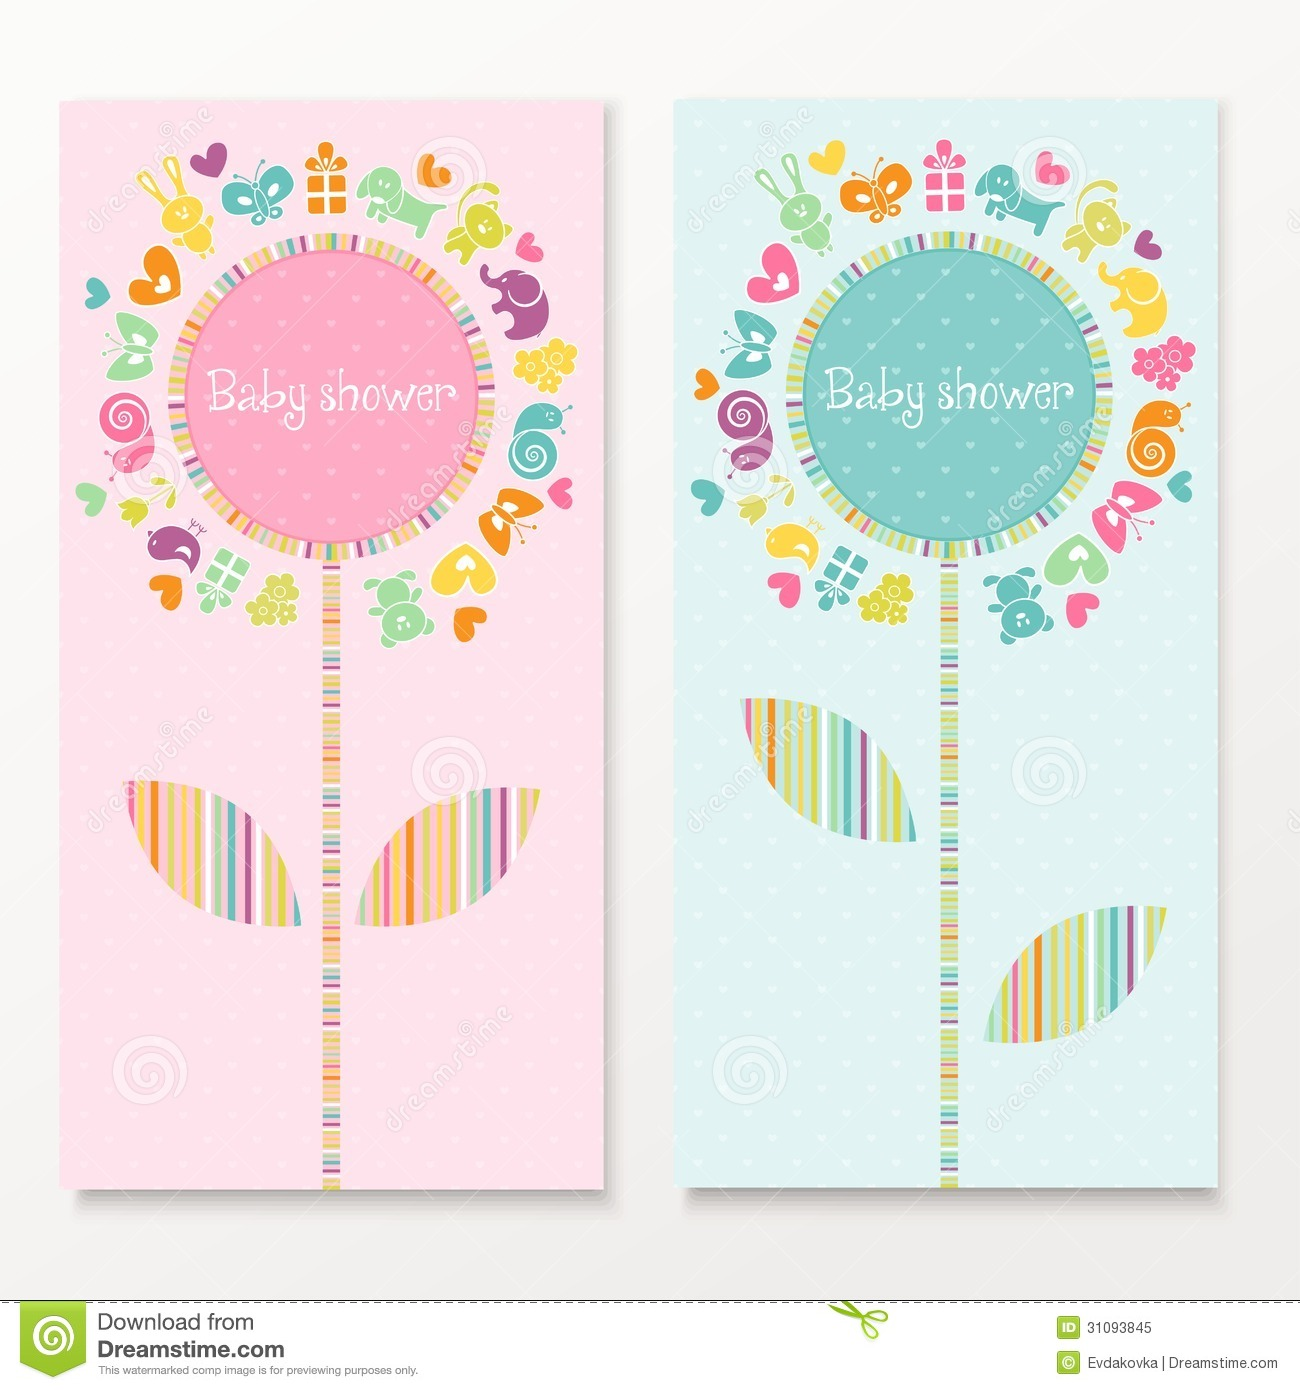 Baby Shower Cards Royalty Free Stock Photo - Image: 31093845